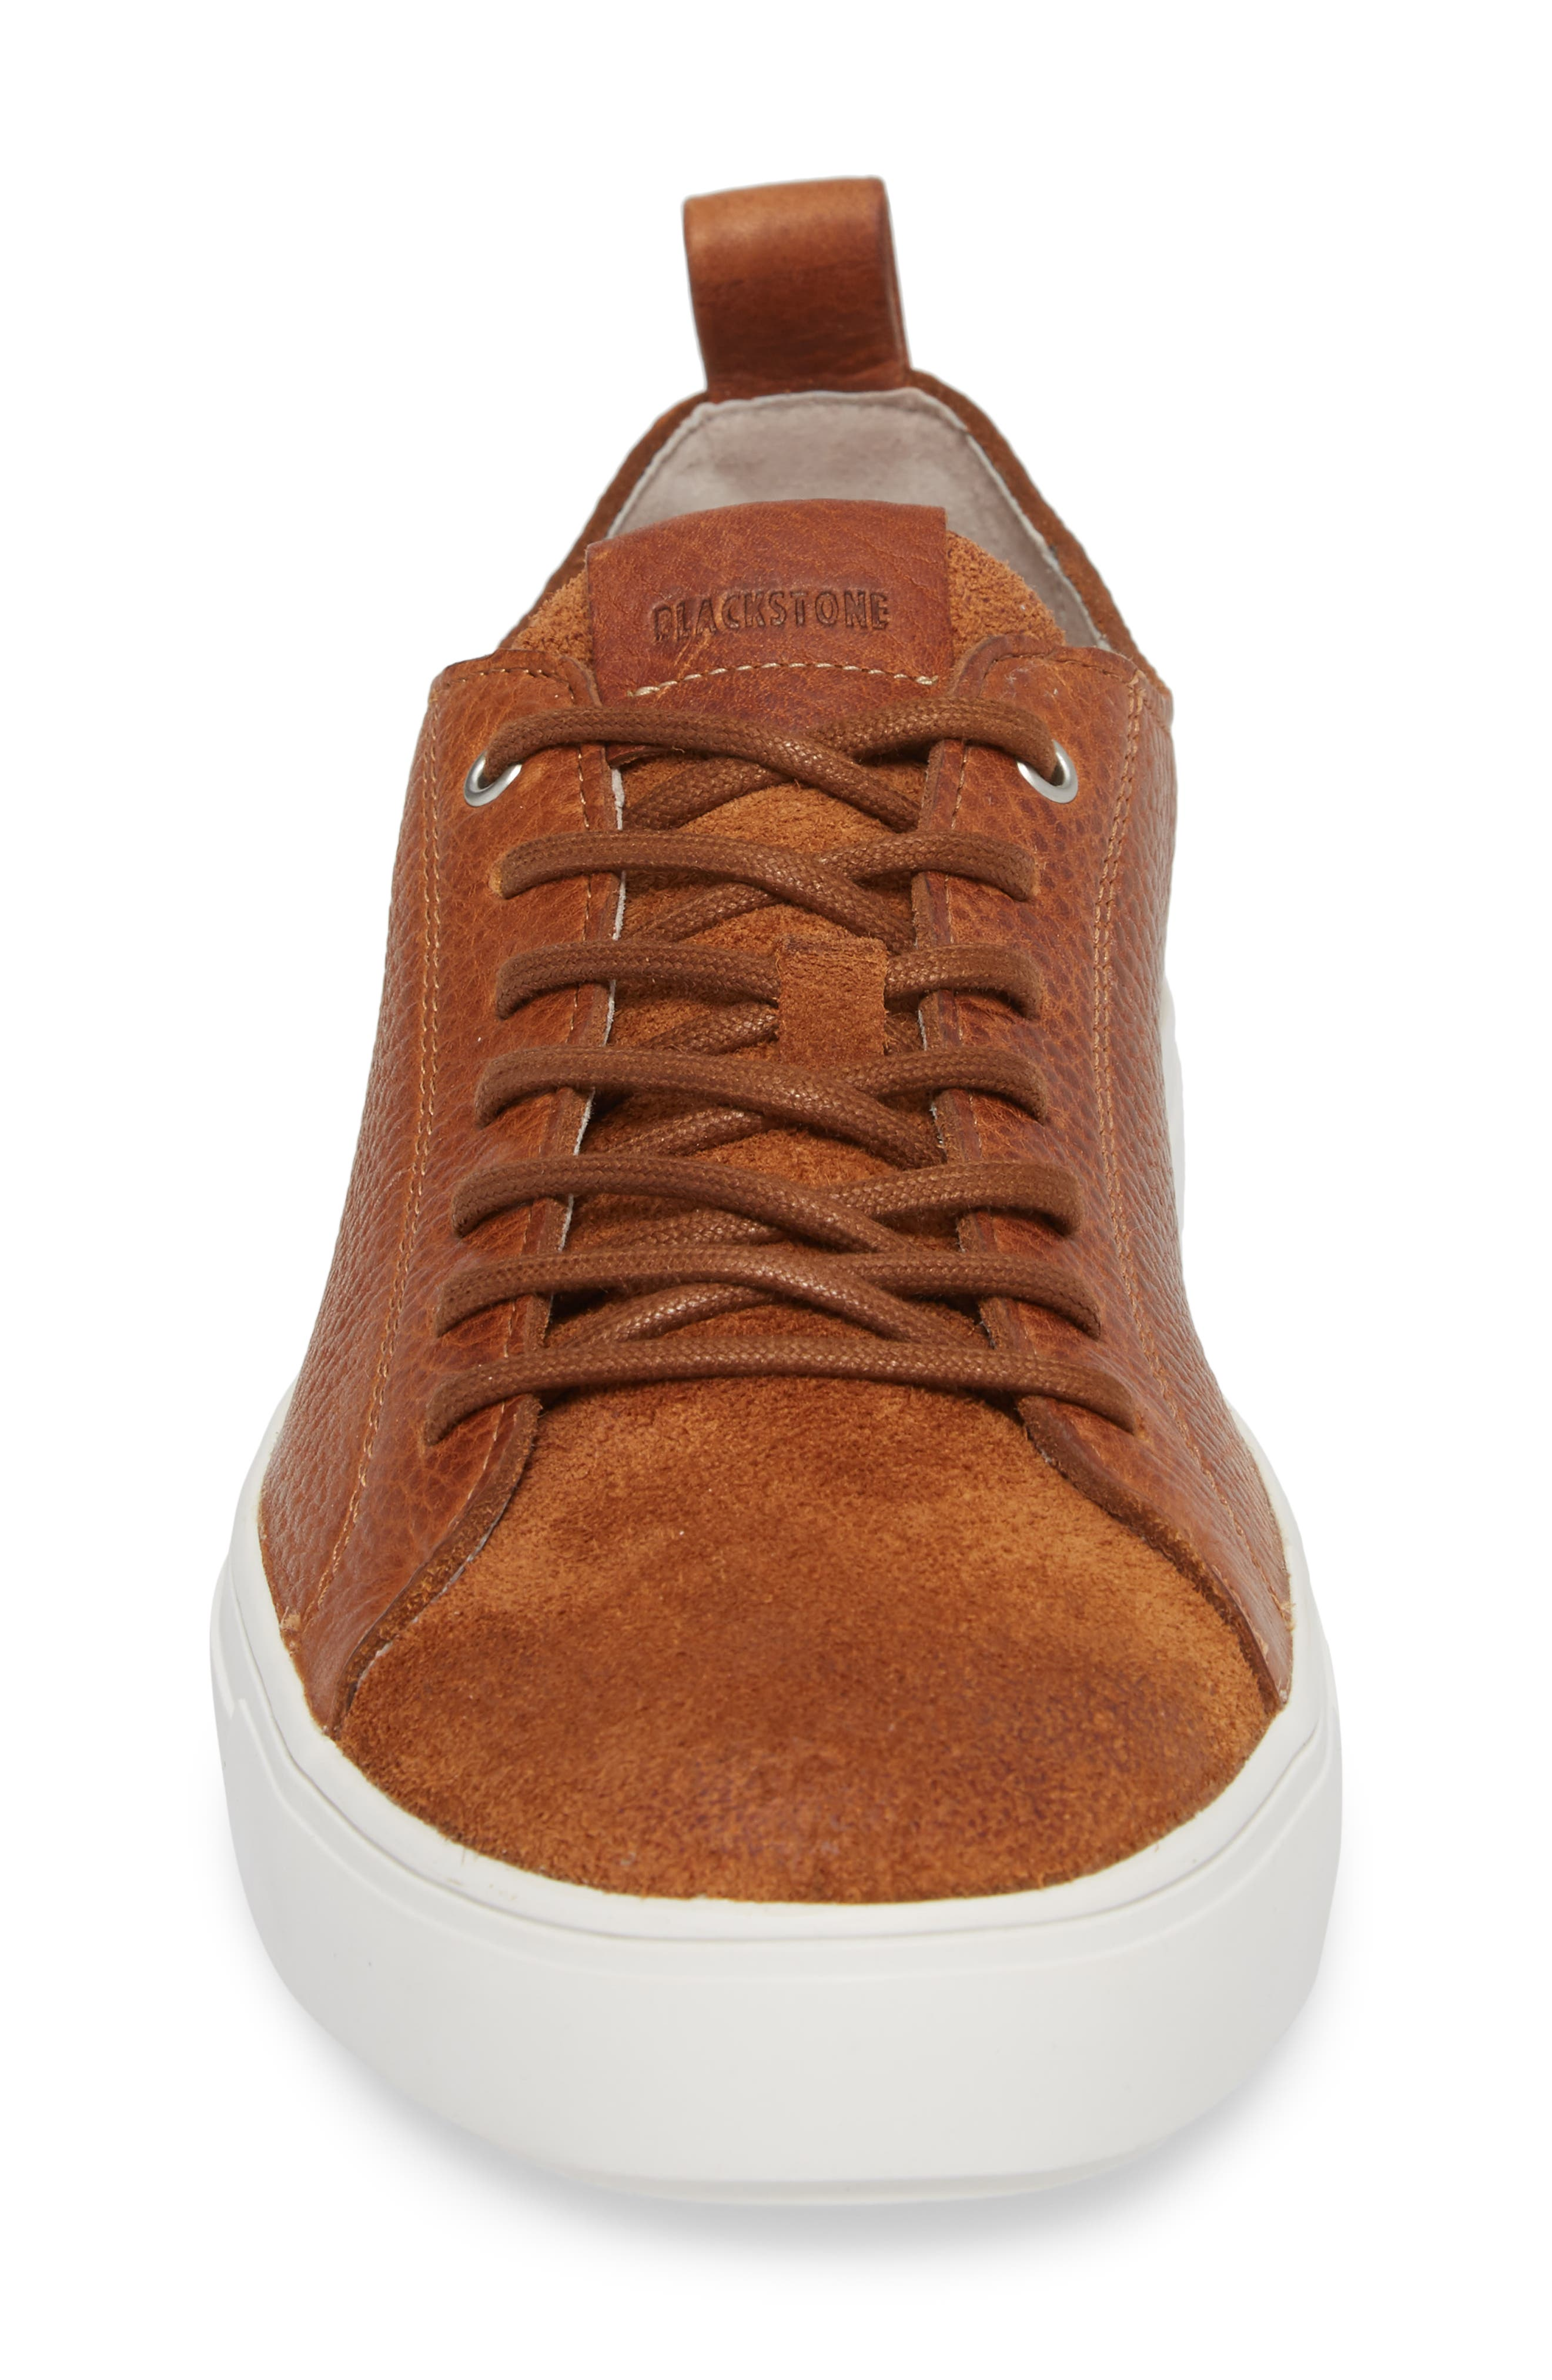 PM46 Low Top Sneaker,                             Alternate thumbnail 4, color,                             Cuoio Leather